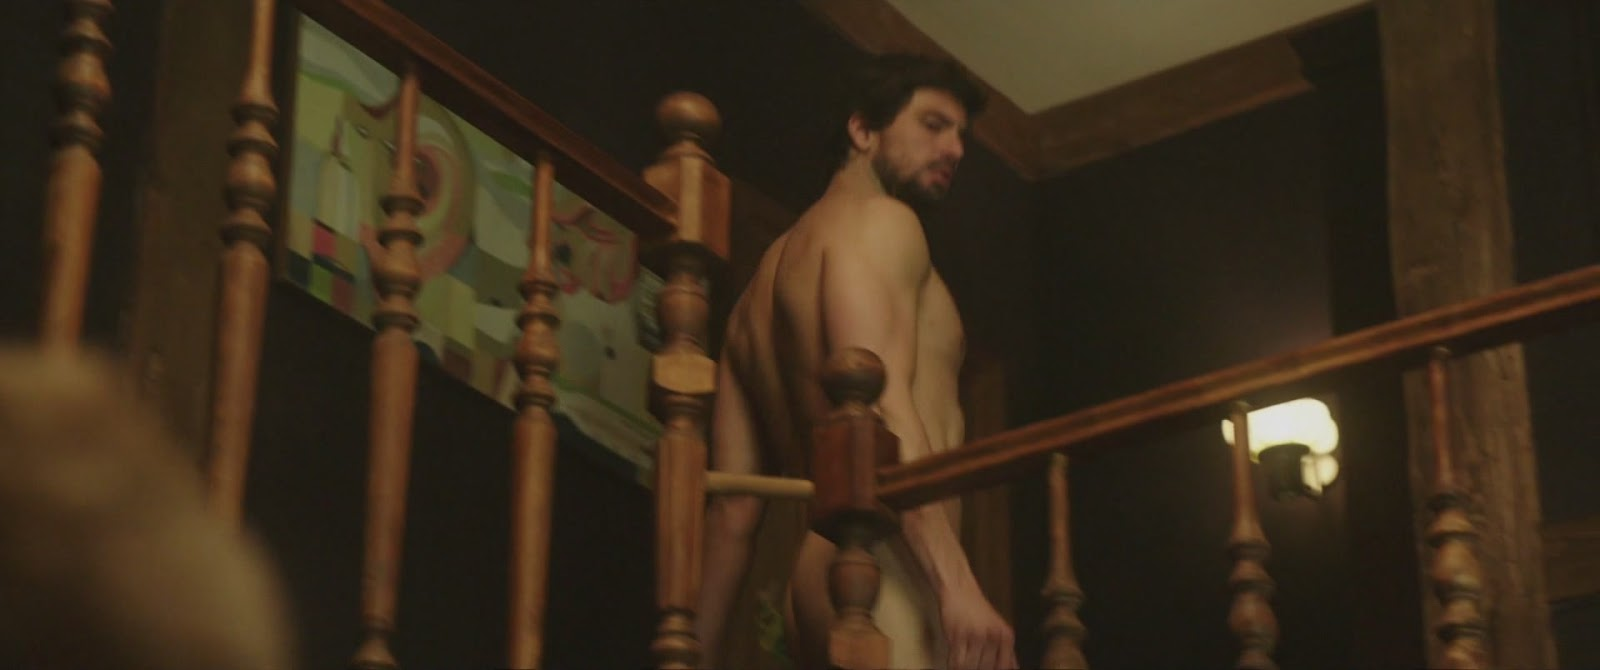 tom welling Naked - Photos, Pictures!